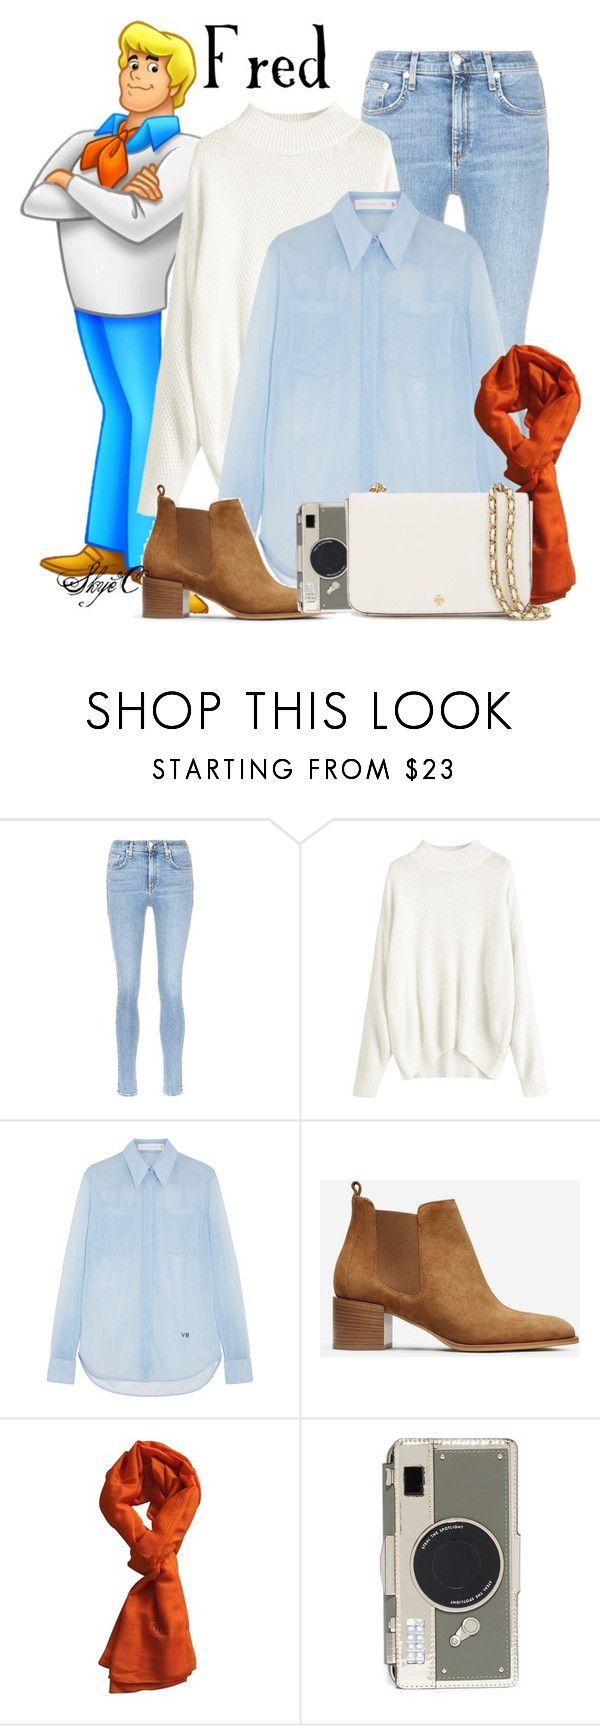 """""""Fred - Scooby Doo"""" by rubytyra ❤ liked on Polyvore featuring rag & bone/JEAN, Victoria Beckham, Everlane, Hermès, Kate Spade and Tory Burch"""